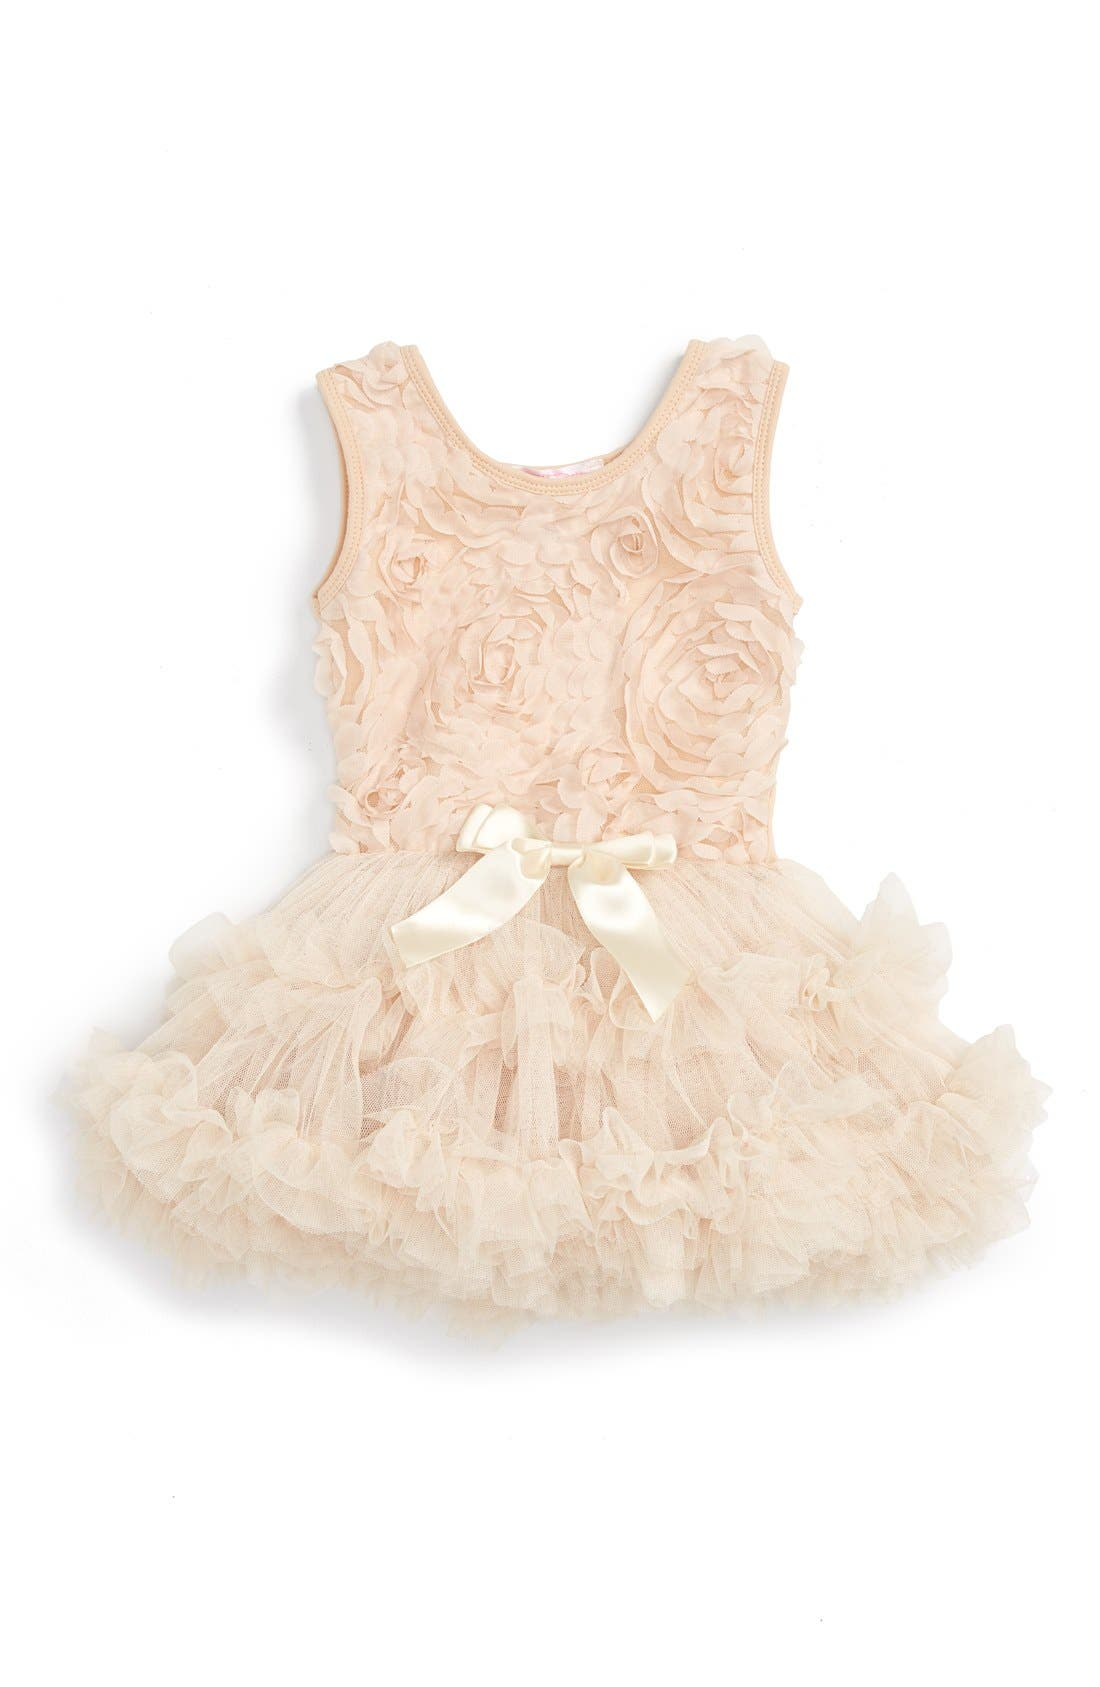 POPATU Ribbon Rosette Tutu Dress